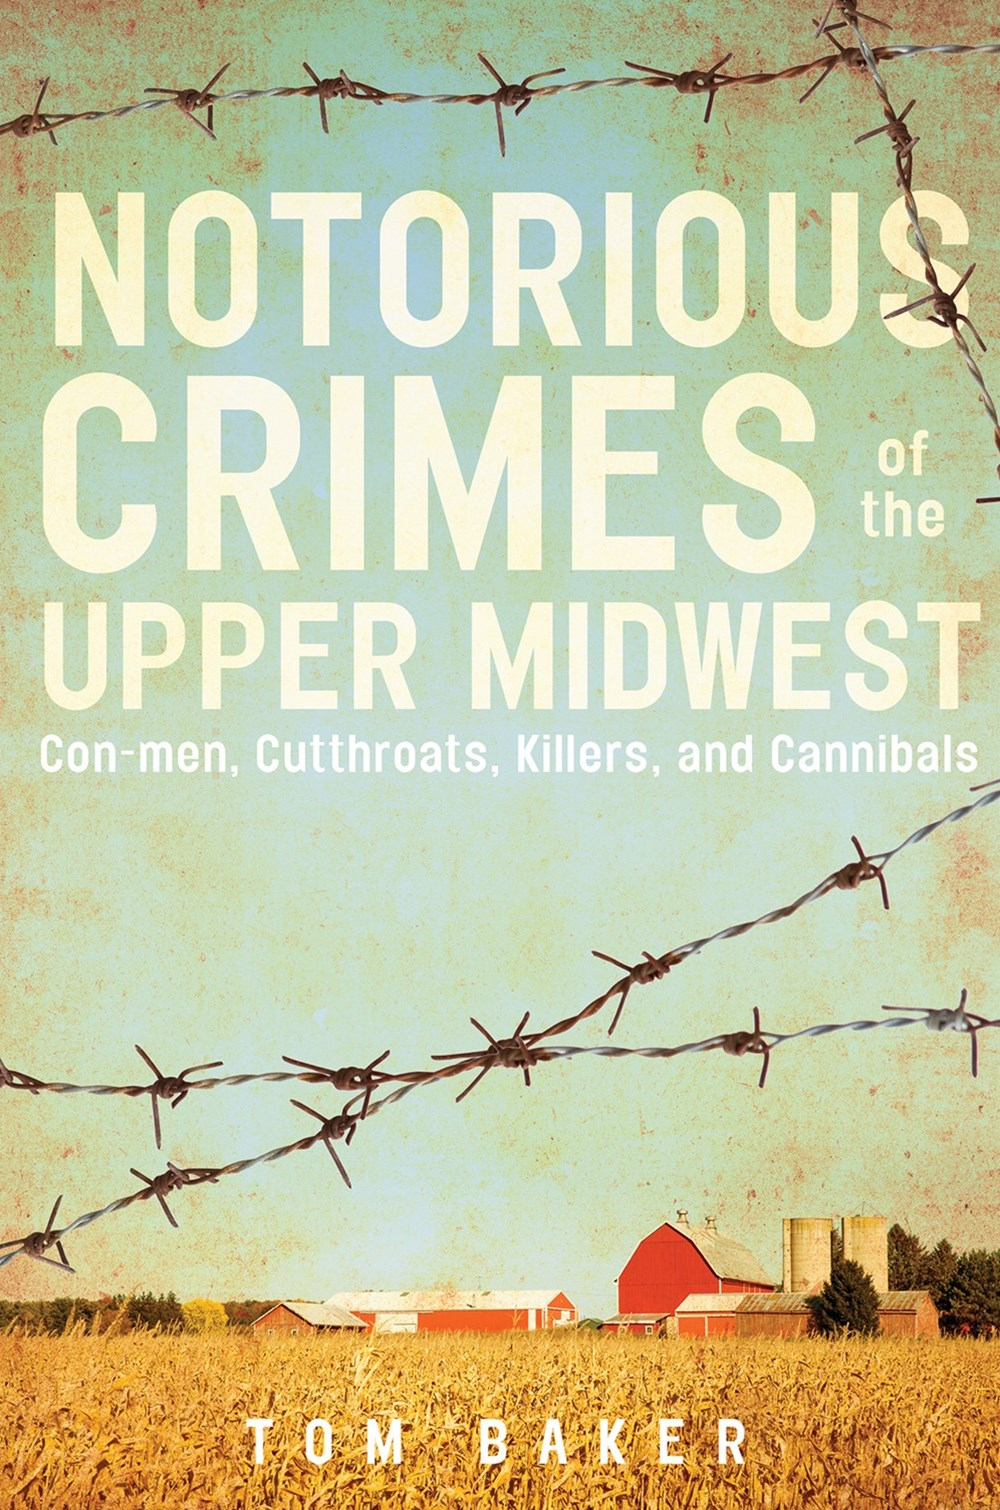 Nortorious Crimes of the Upper Midwest: Con-men, Cutthroats, Killers and Cannibals